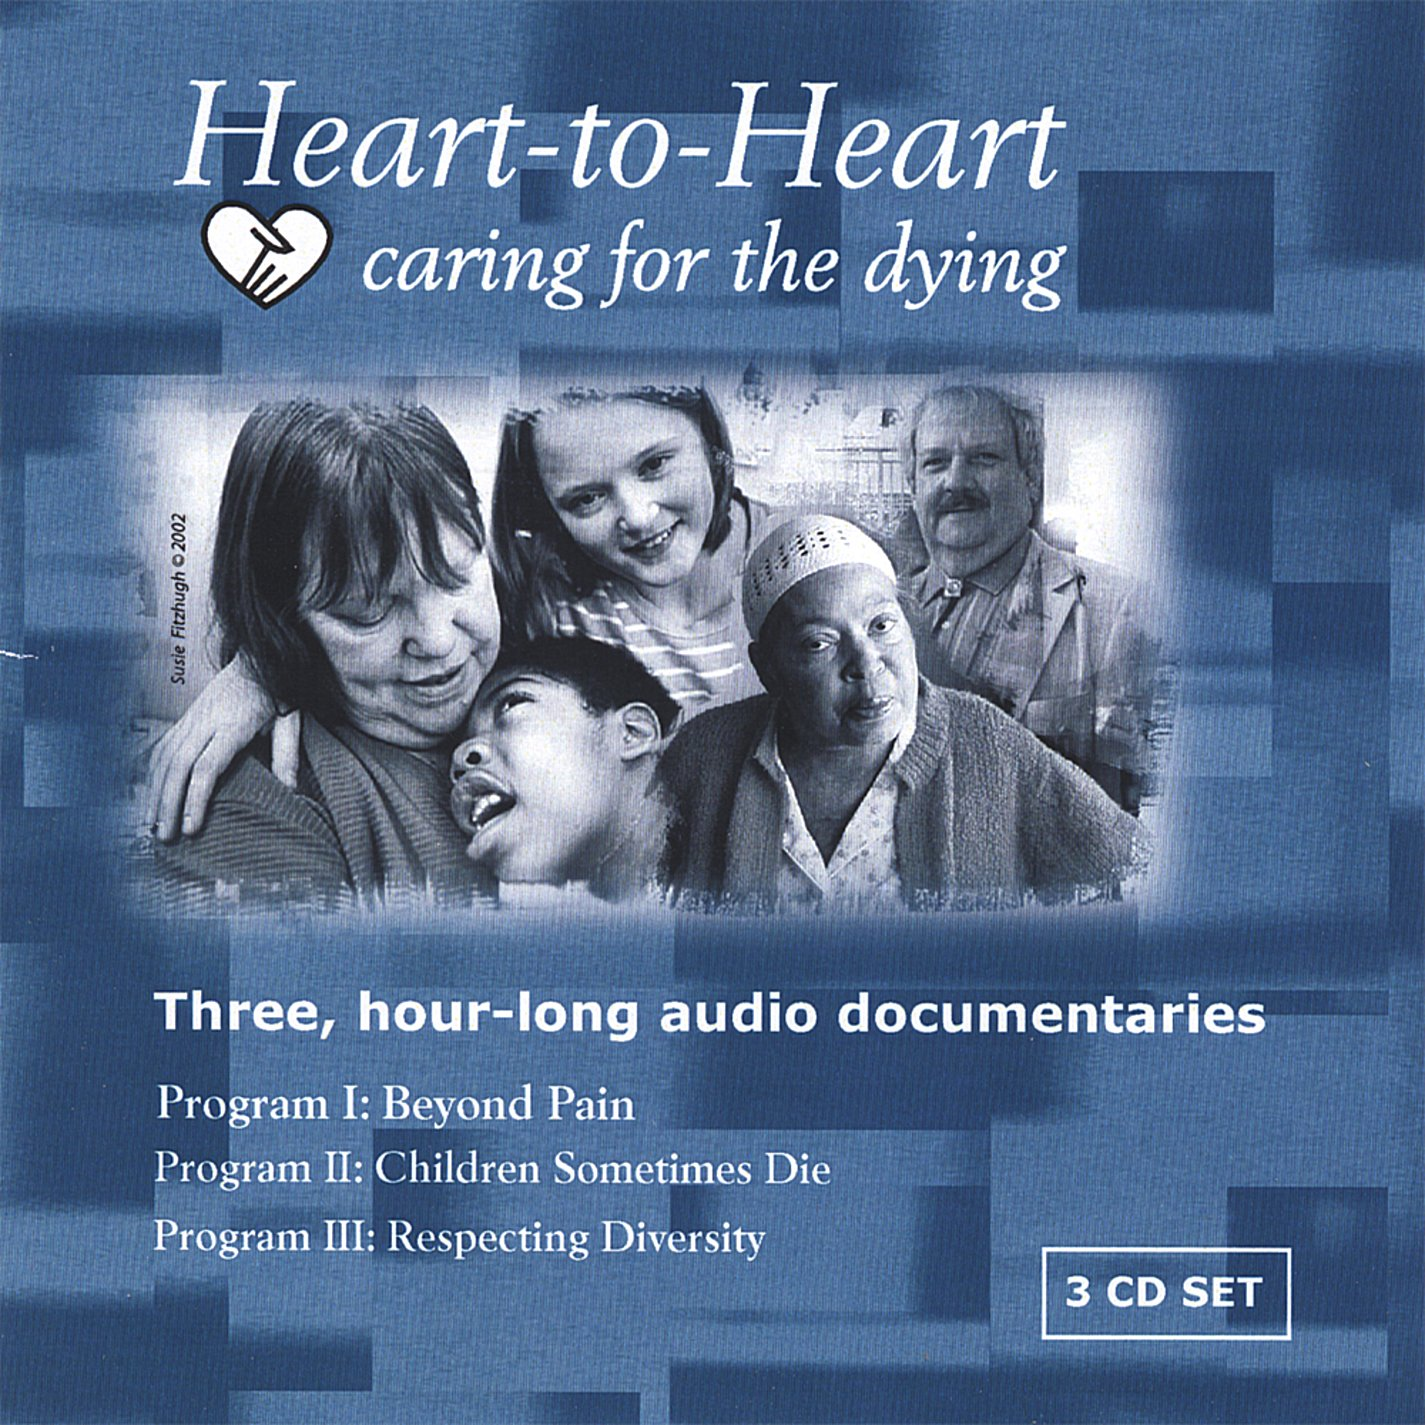 Heart-To-Heart: Caring for the Dying by CD Baby